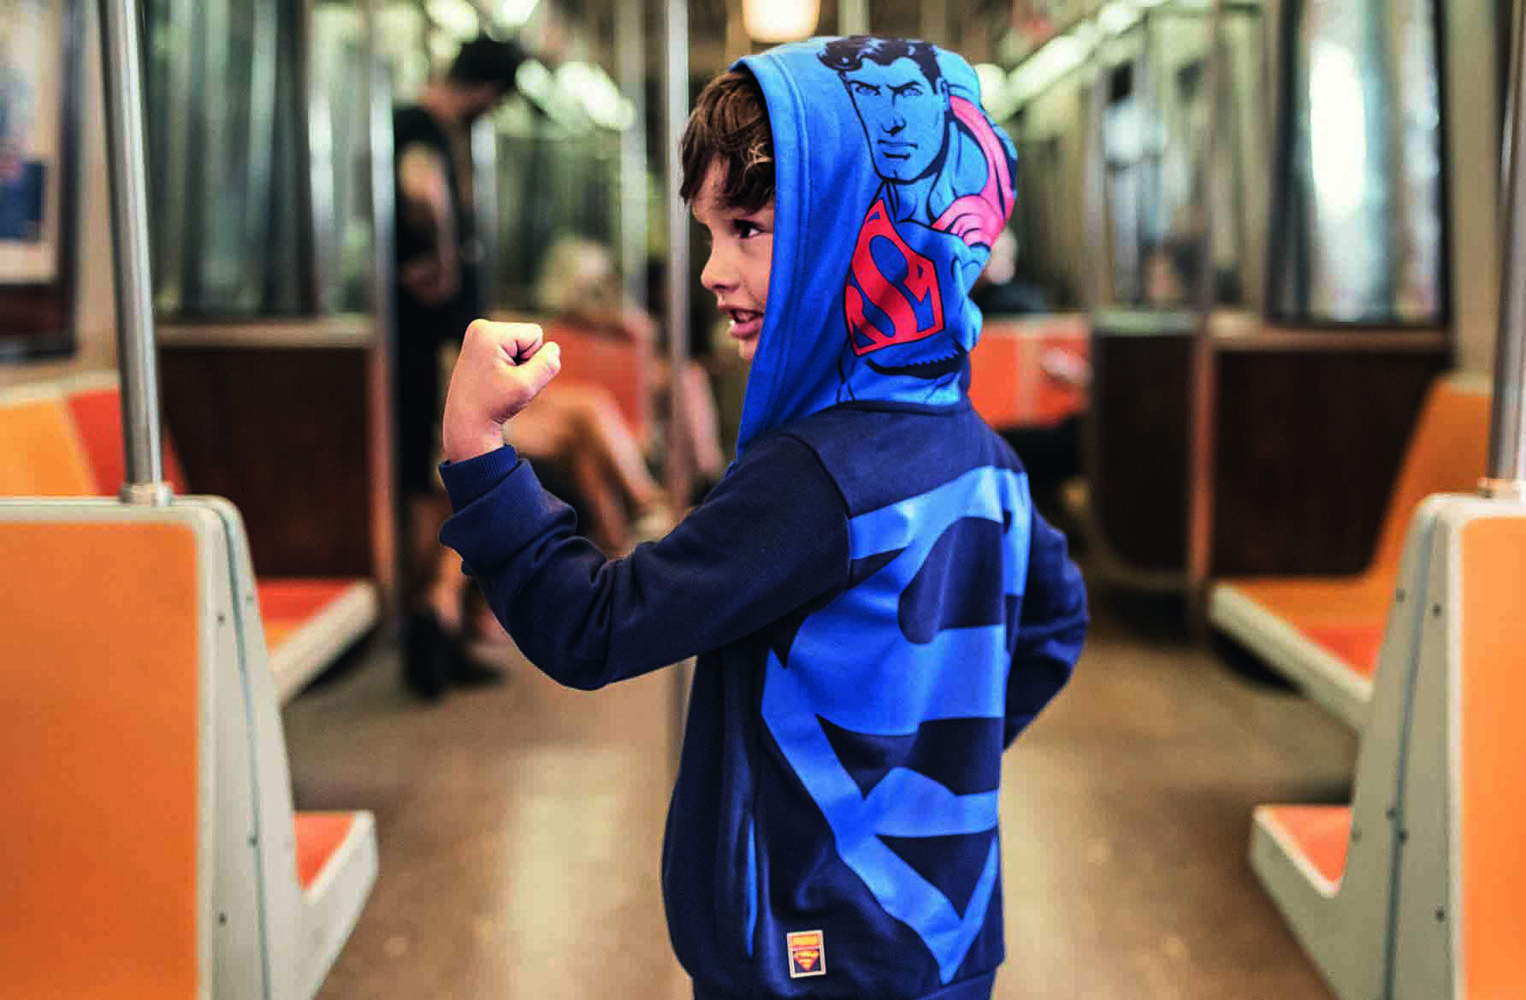 puma-superman-sesamestrasse-kids-ss16-12